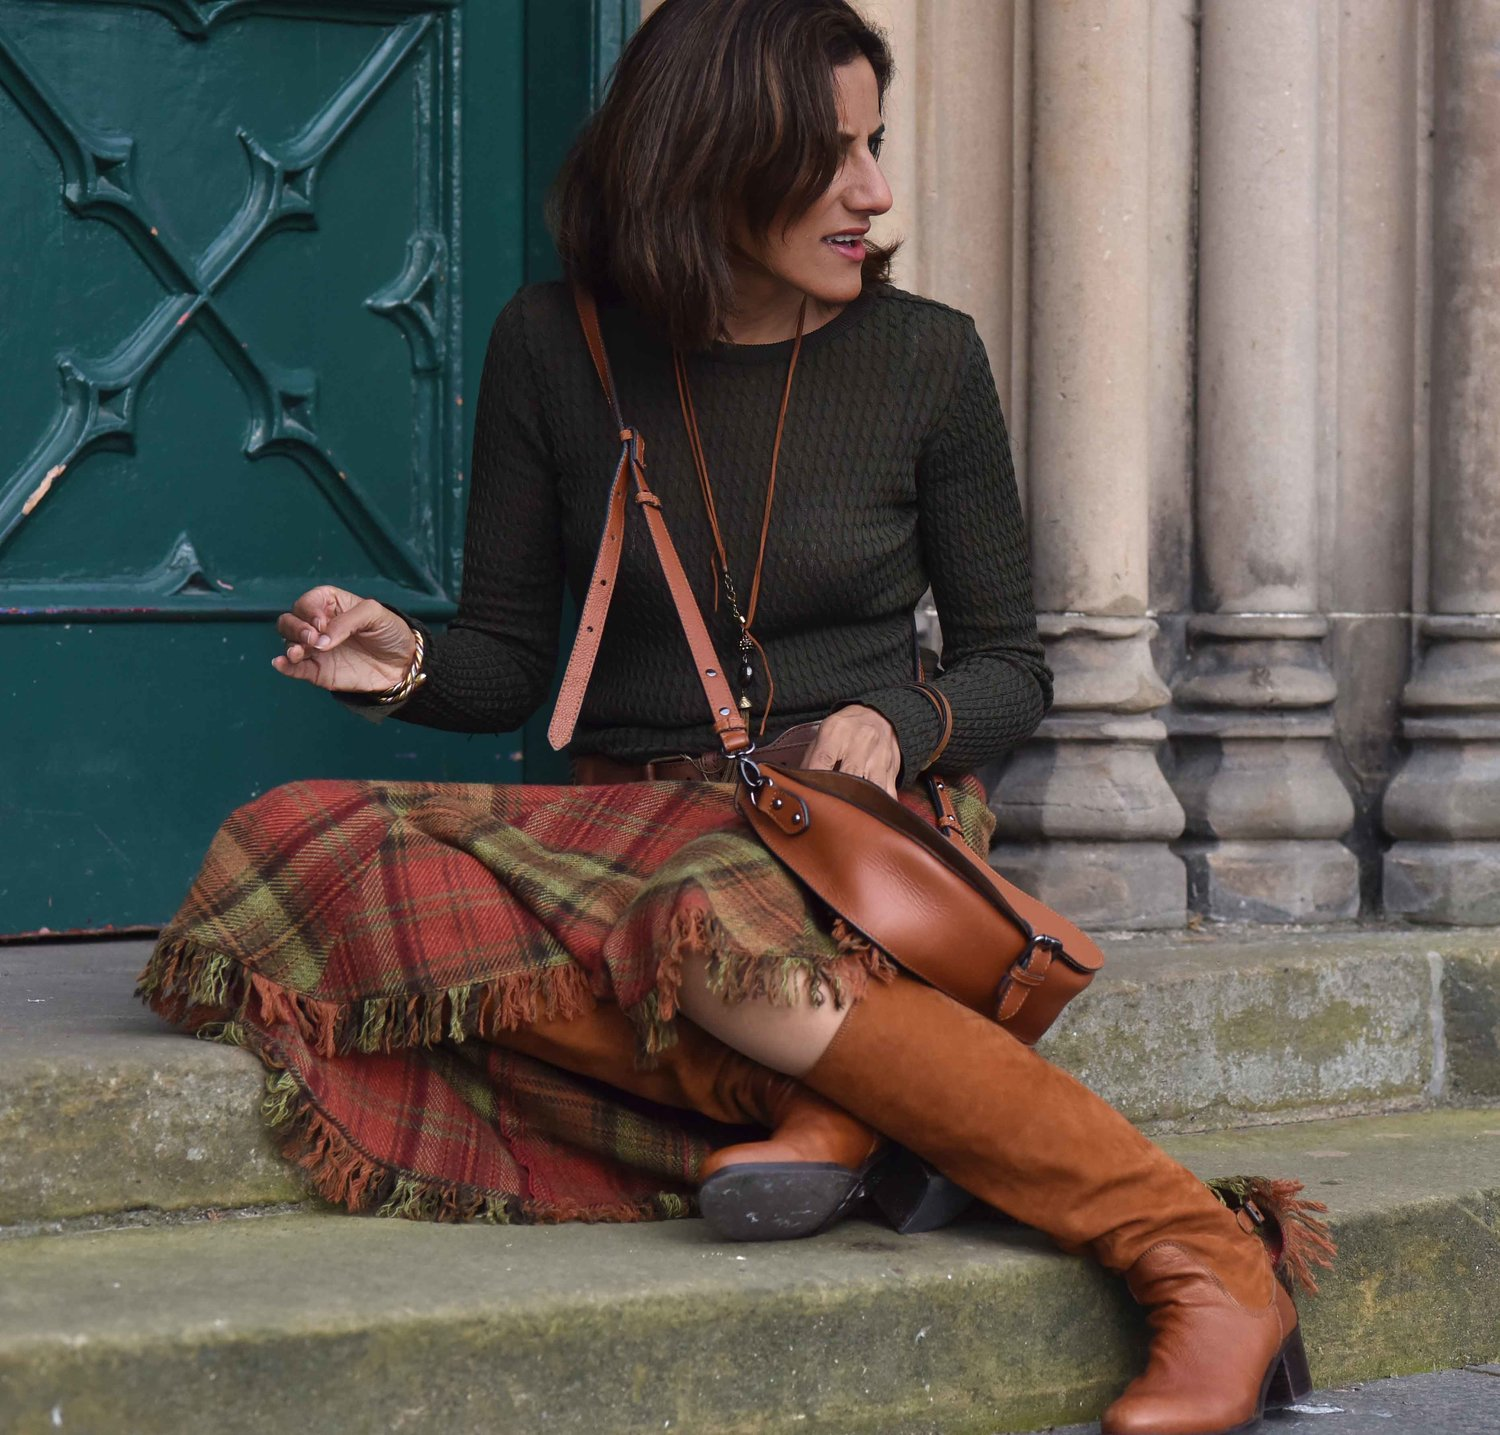 Ralph Lauren Blue Label plaid uneven hem skirt, tan Clarks bag, tan boots, Inverness, Scotland. Image©thingstodot.com